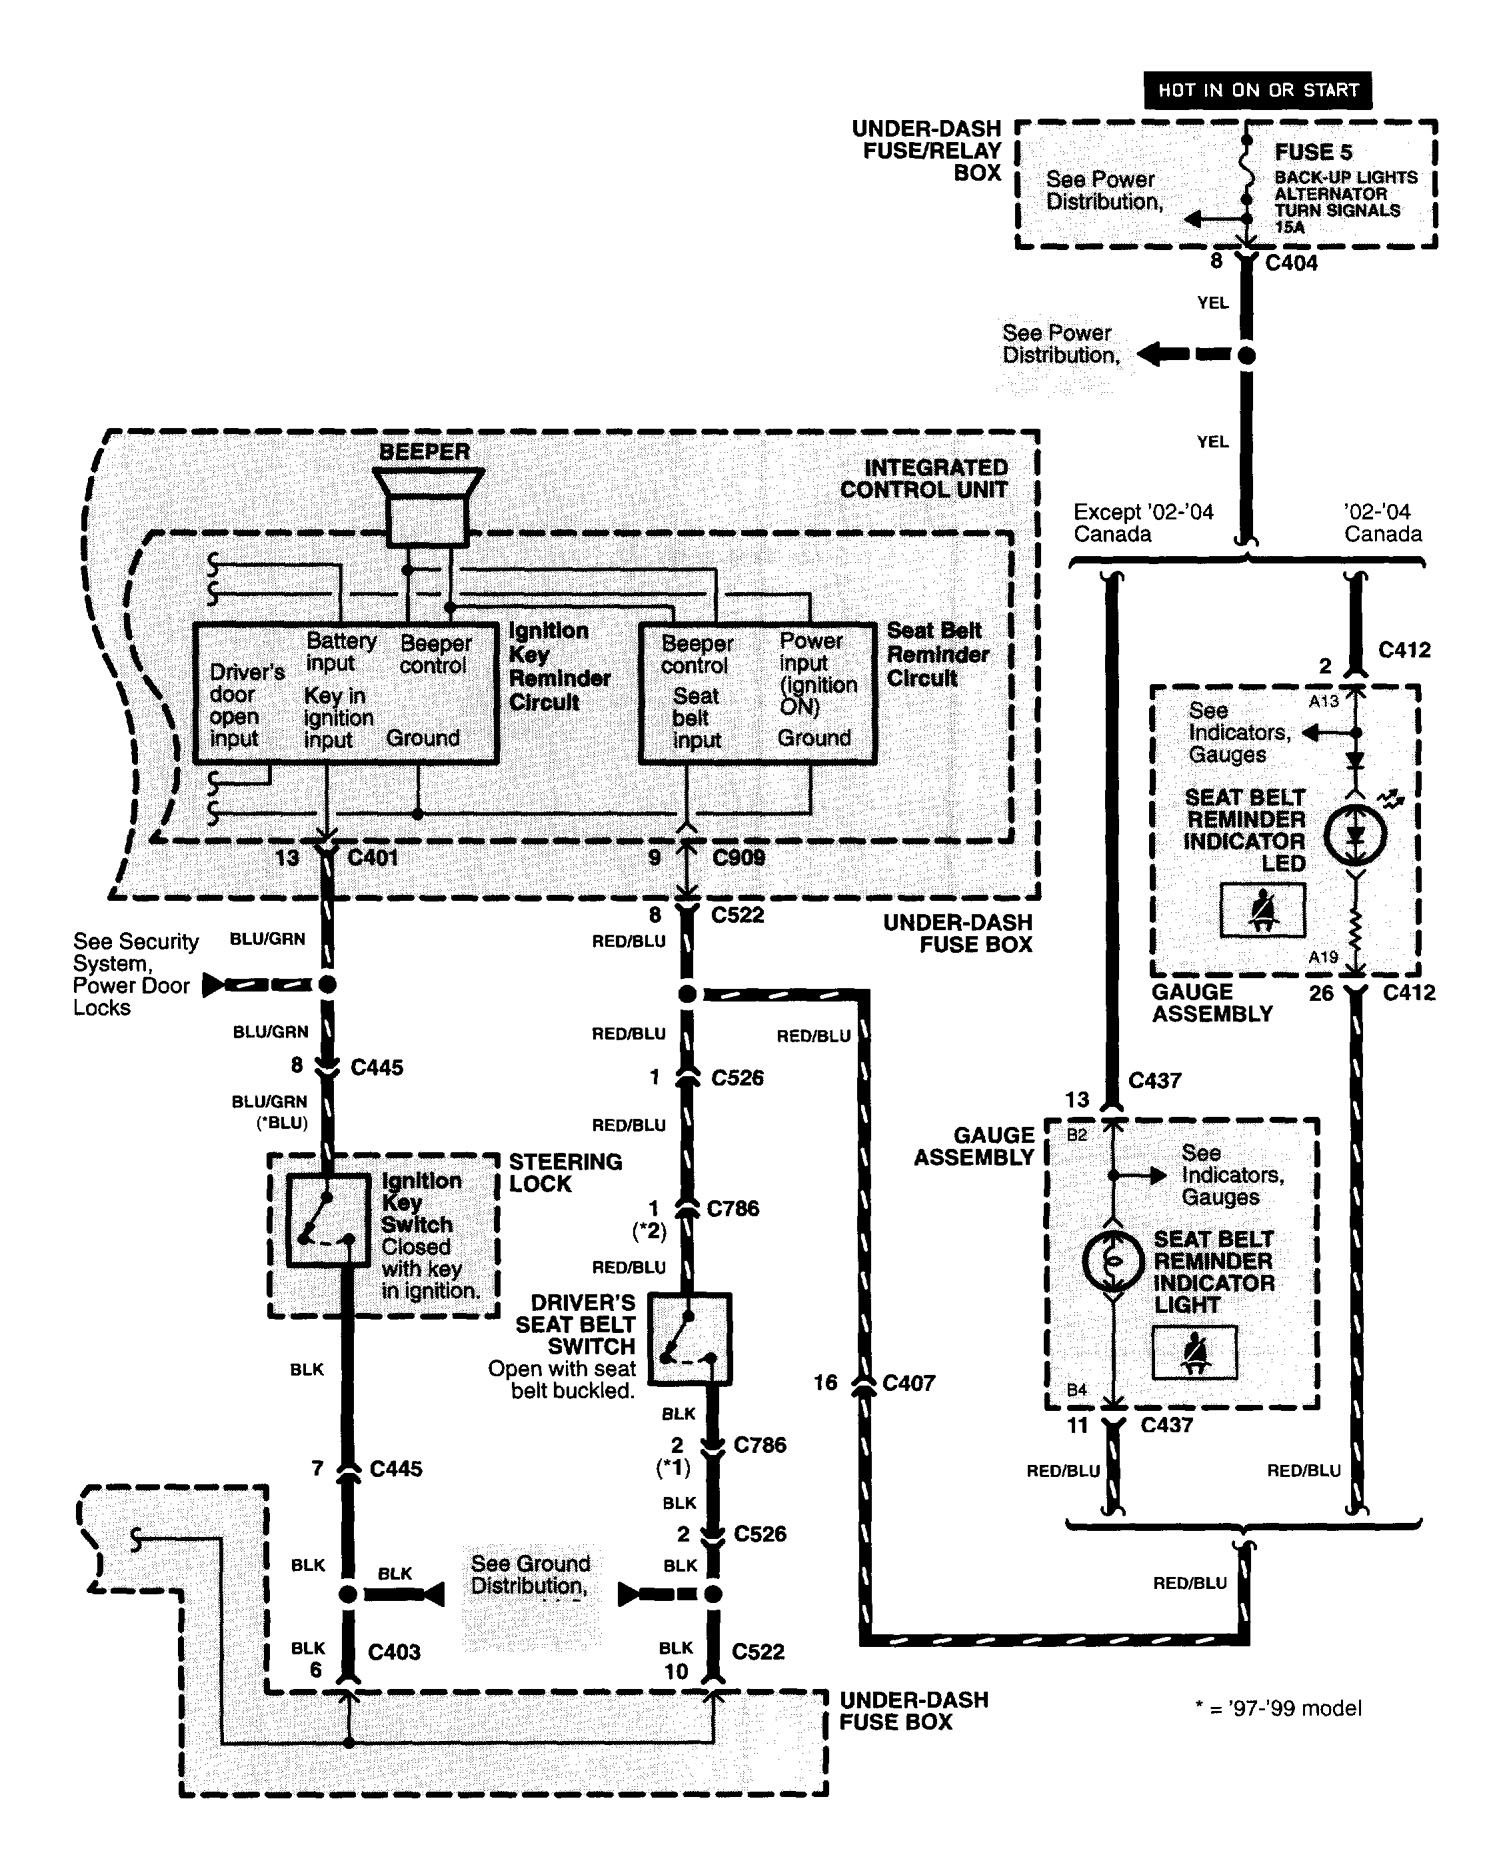 Nordskog Wiring Diagram For A